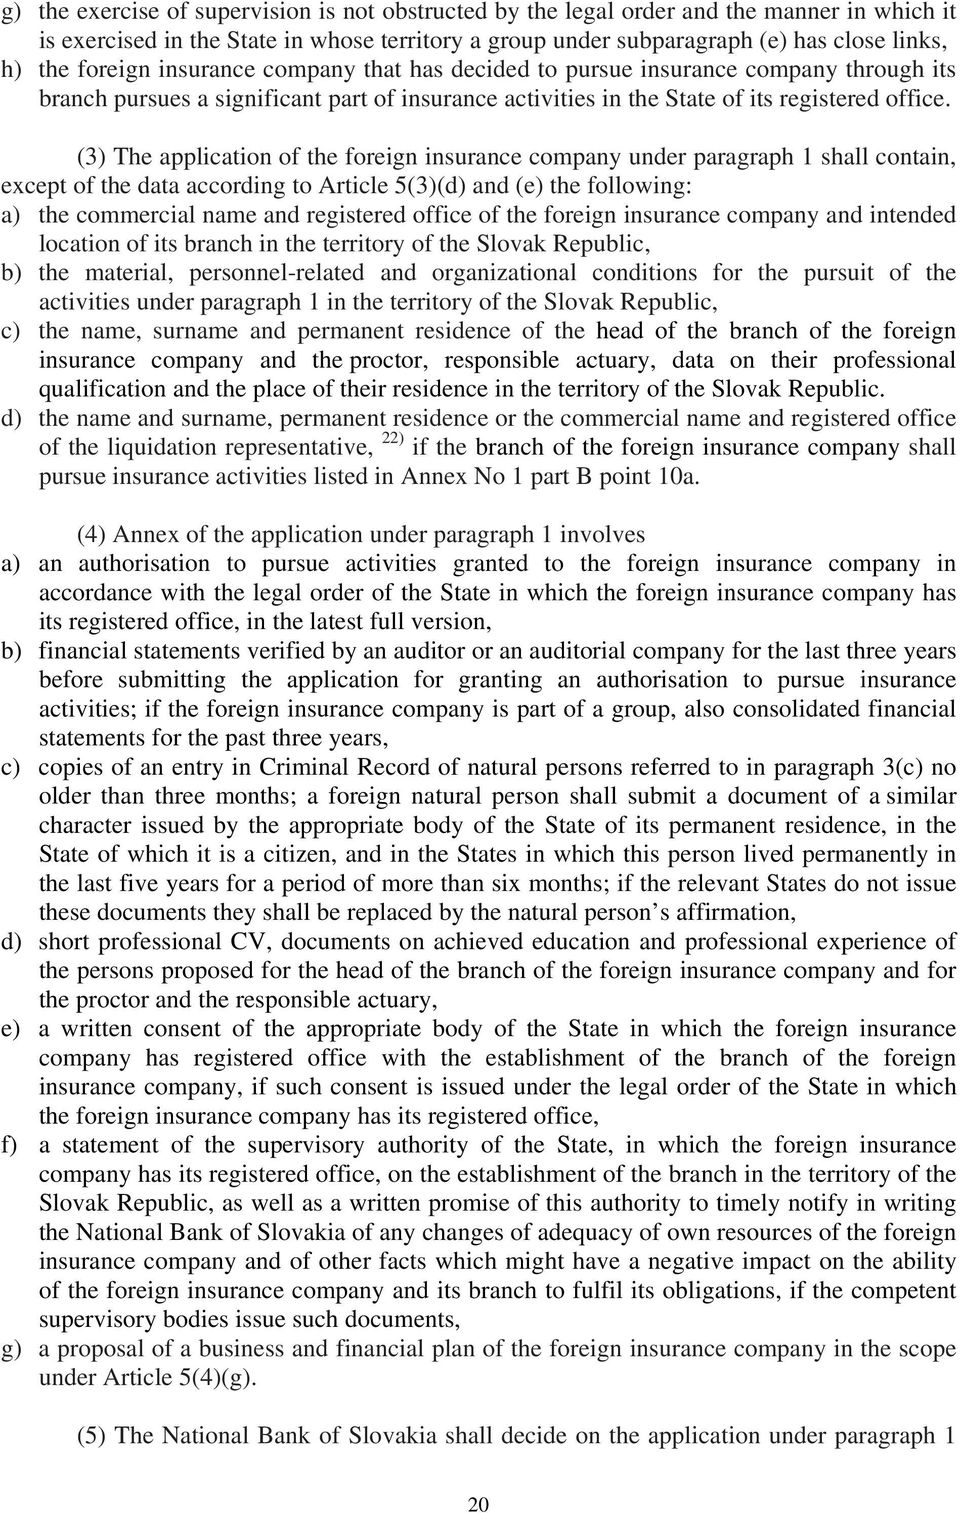 (3) The application of the foreign insurance company under paragraph 1 shall contain, except of the data according to Article 5(3)(d) and (e) the following: a) the commercial name and registered